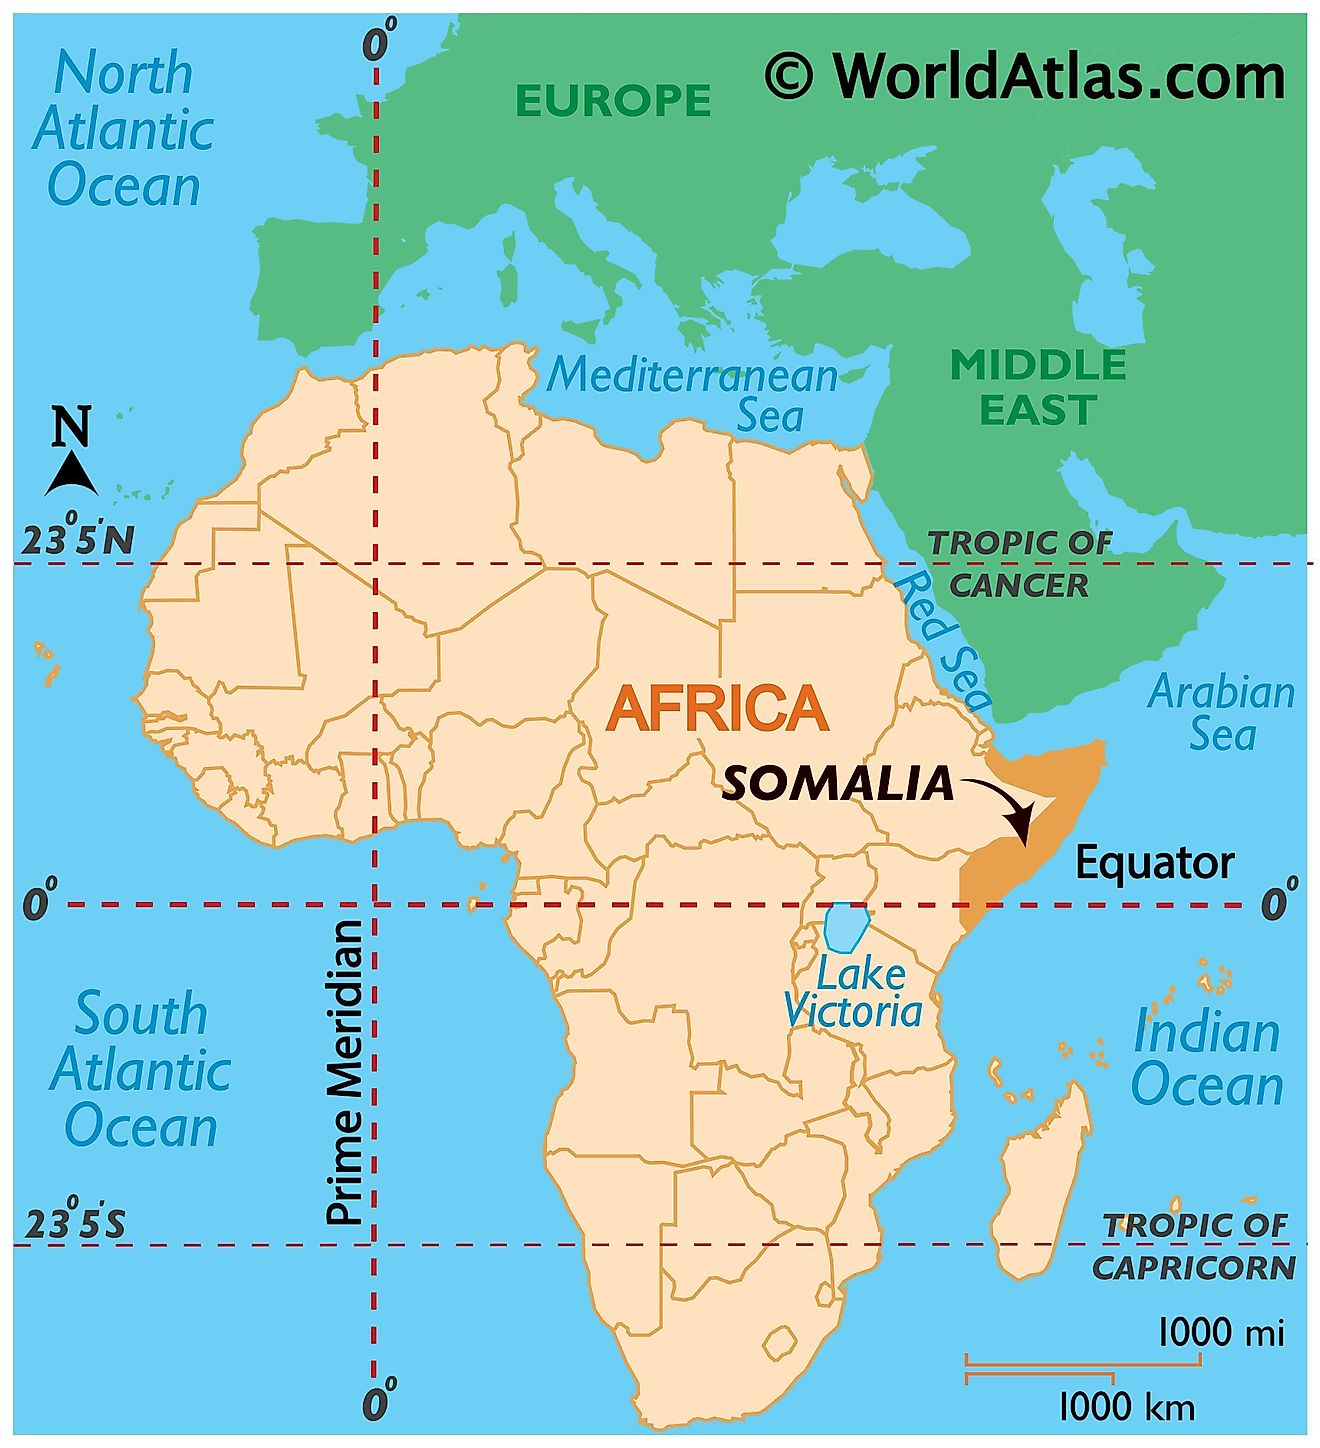 Map showing location of Somalia in the world.